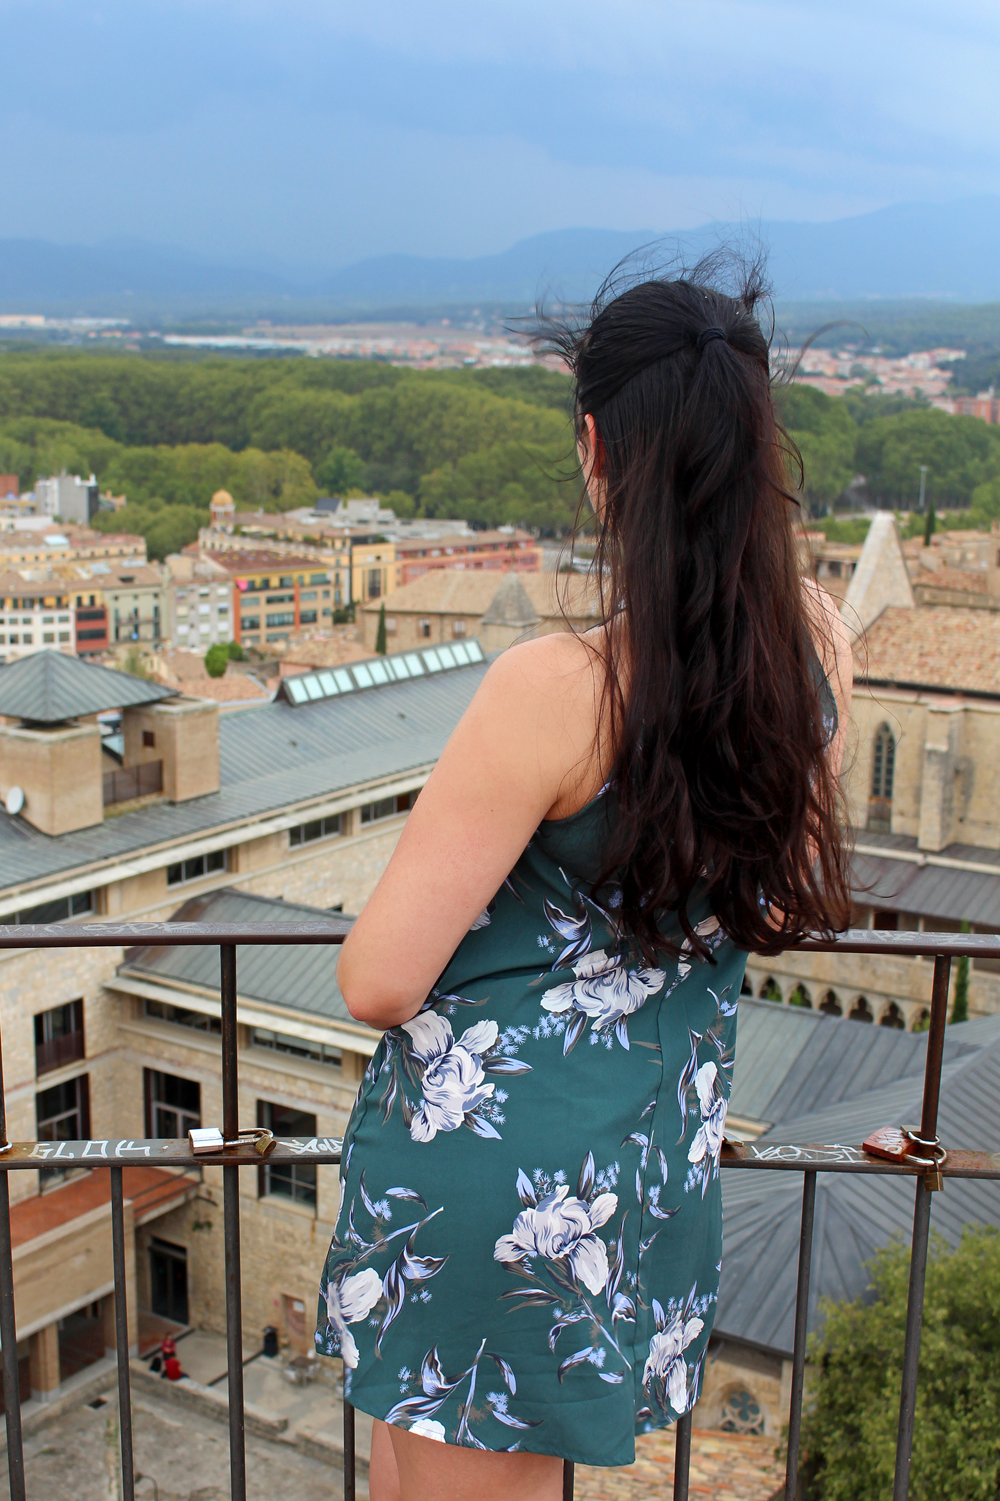 Views of Girona, Spain - travel & lifestyle blog